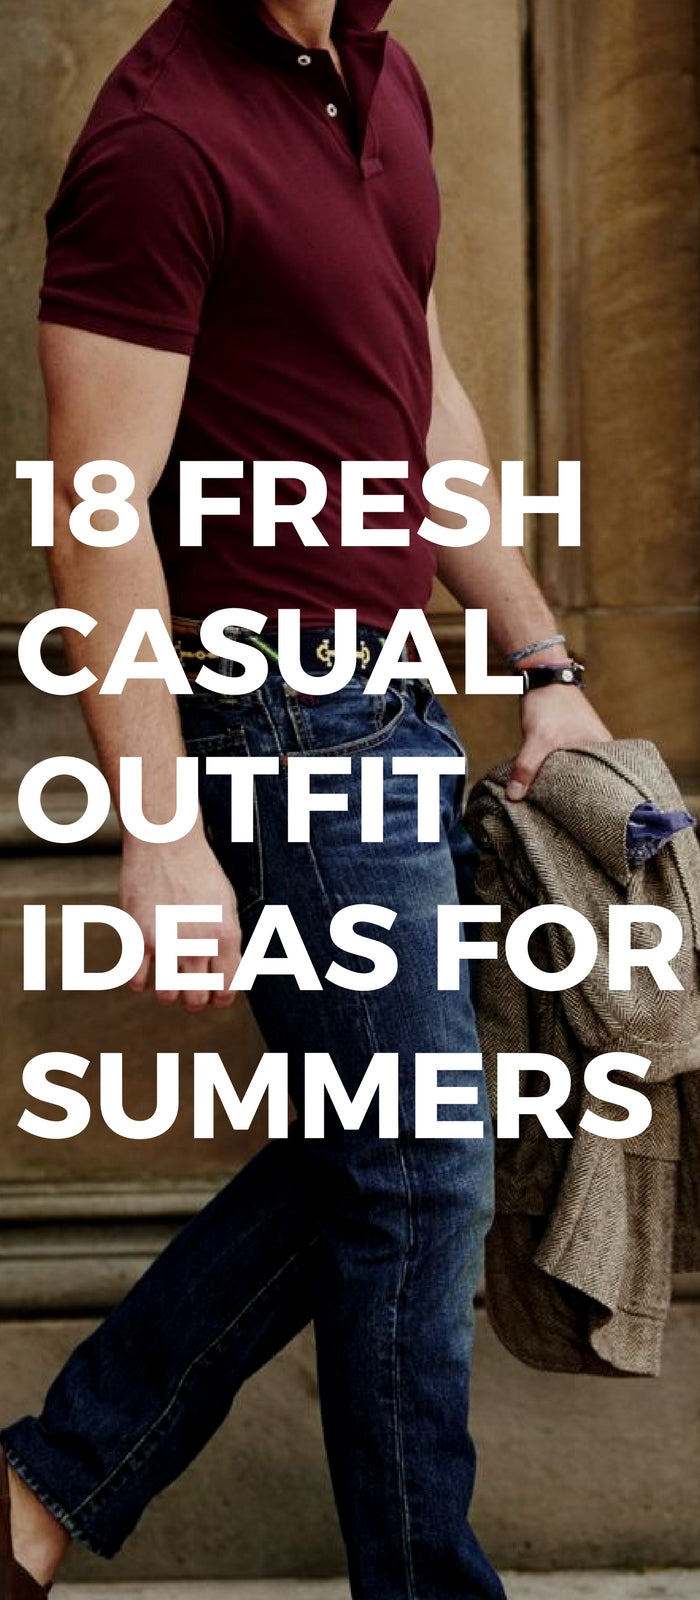 Casual Outfit Ideas For Summers